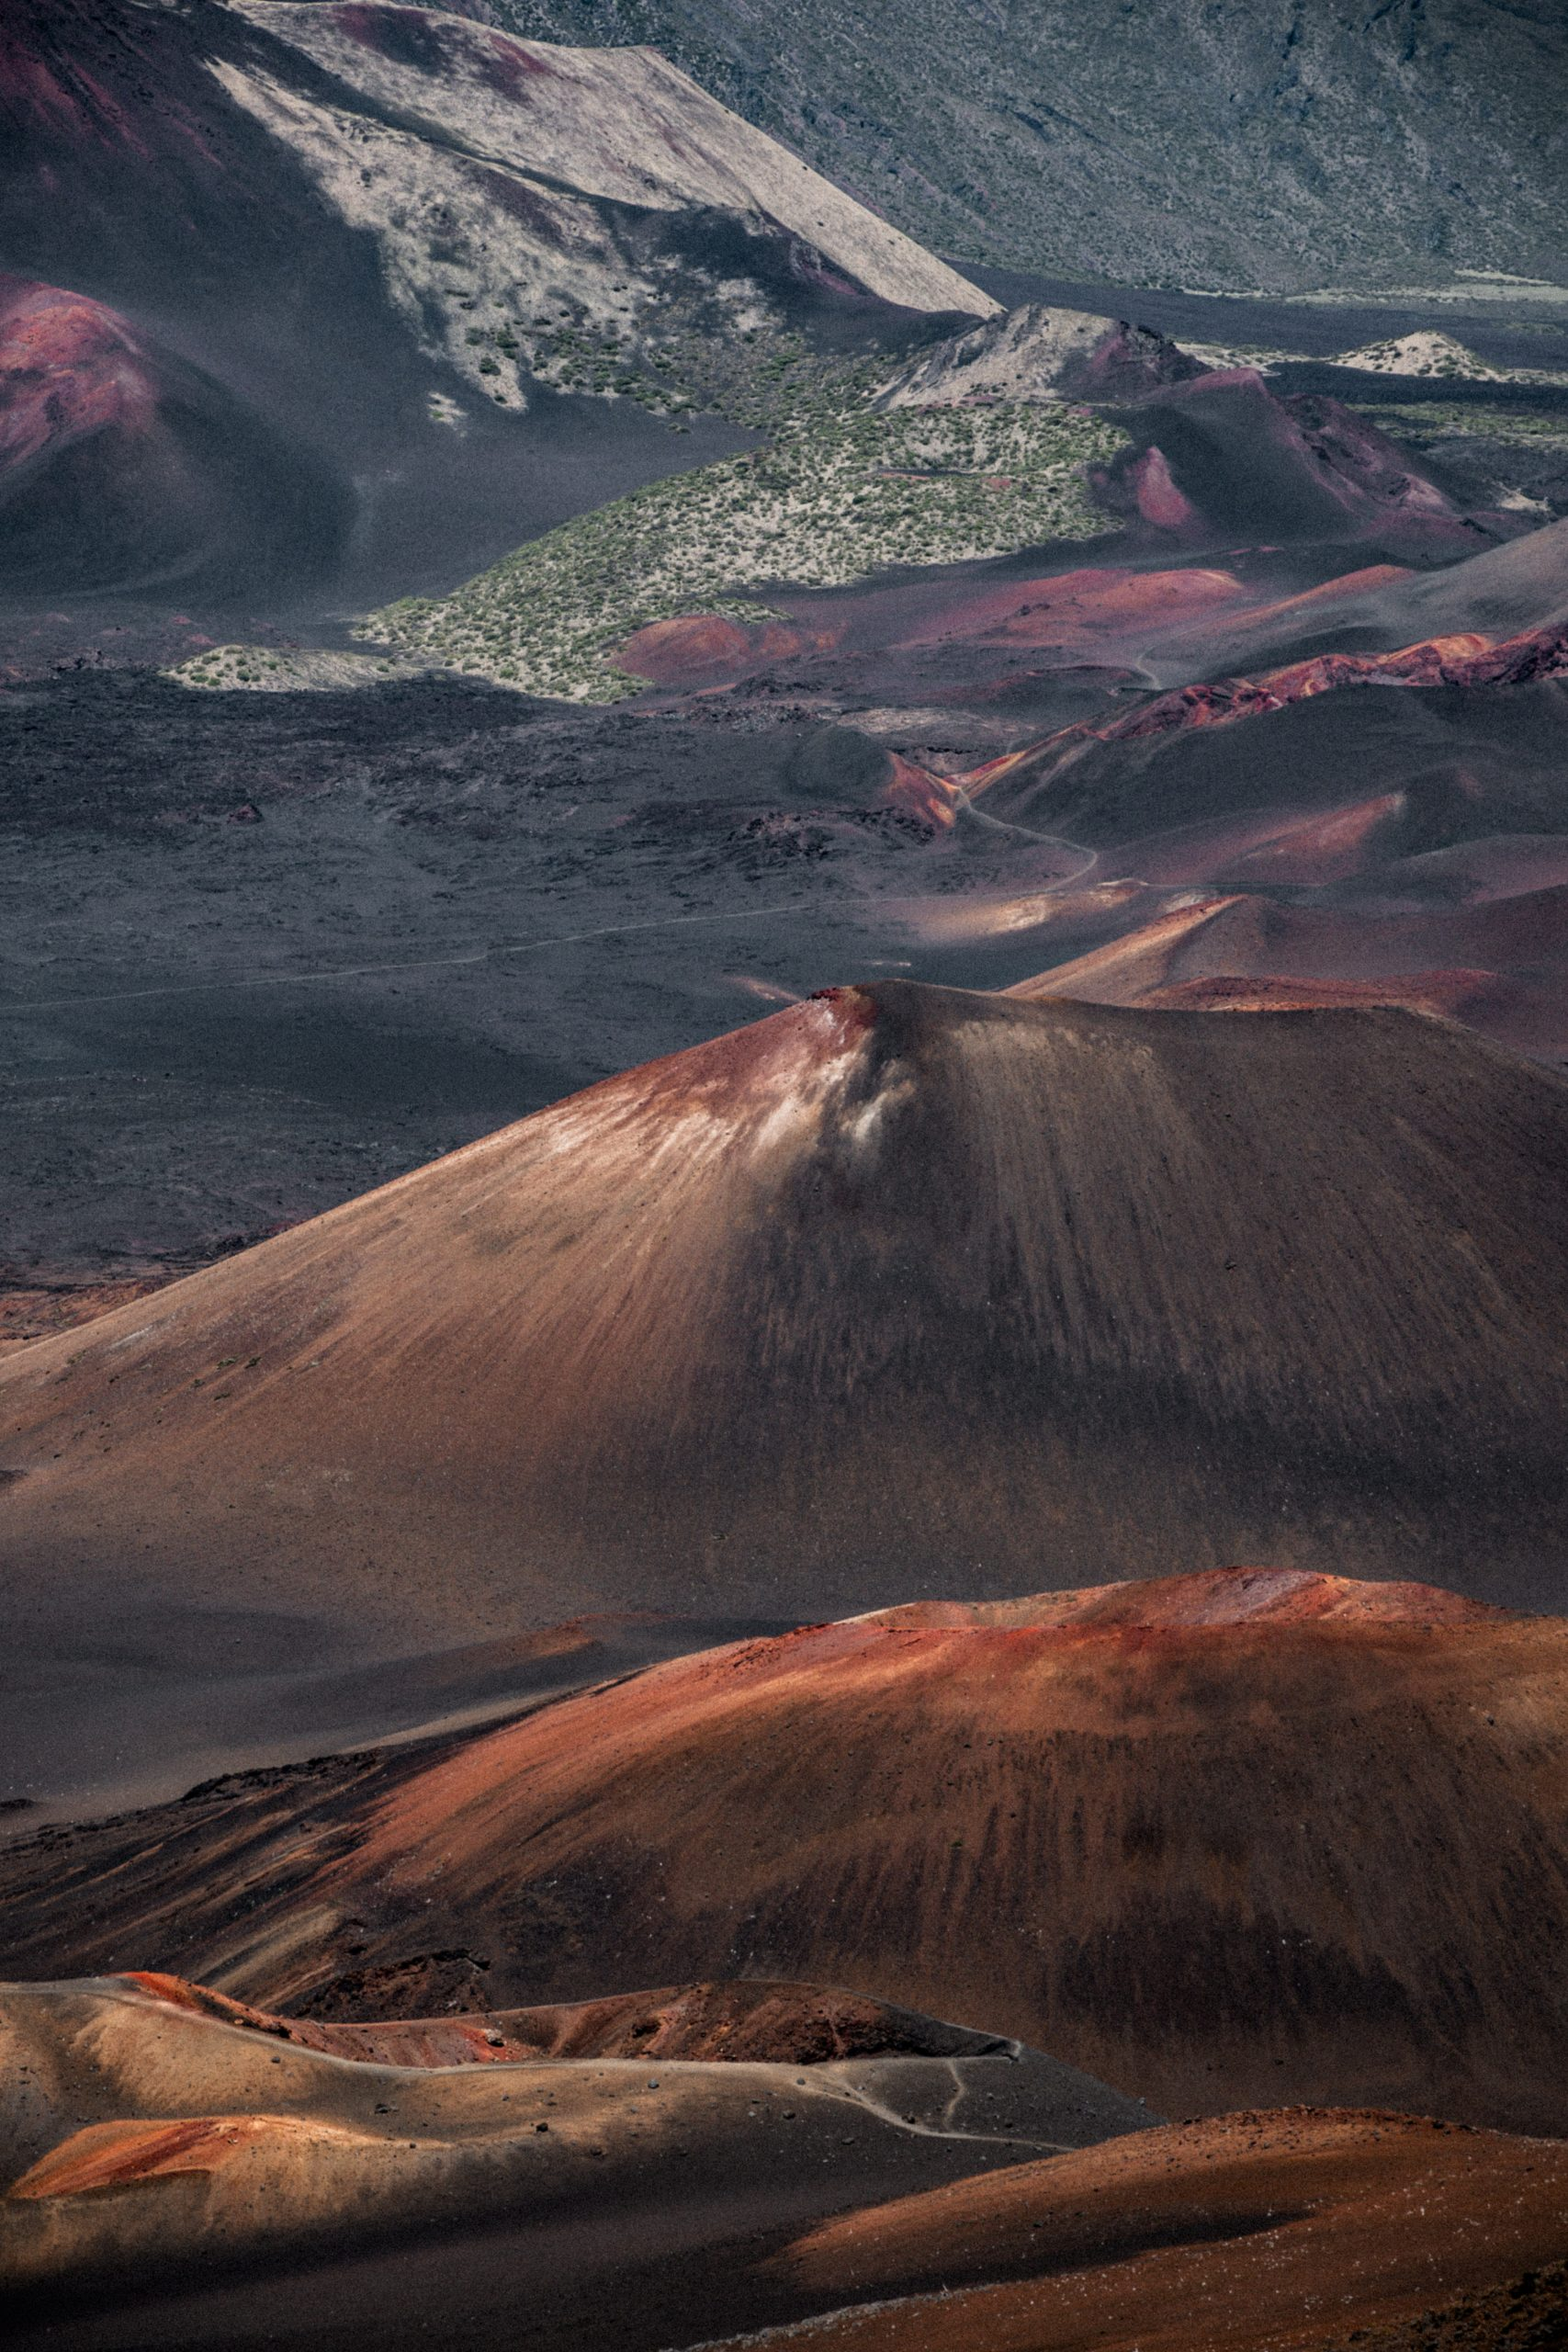 color landscape photograph of Volcanic Dunes in Maui island, Hawaii